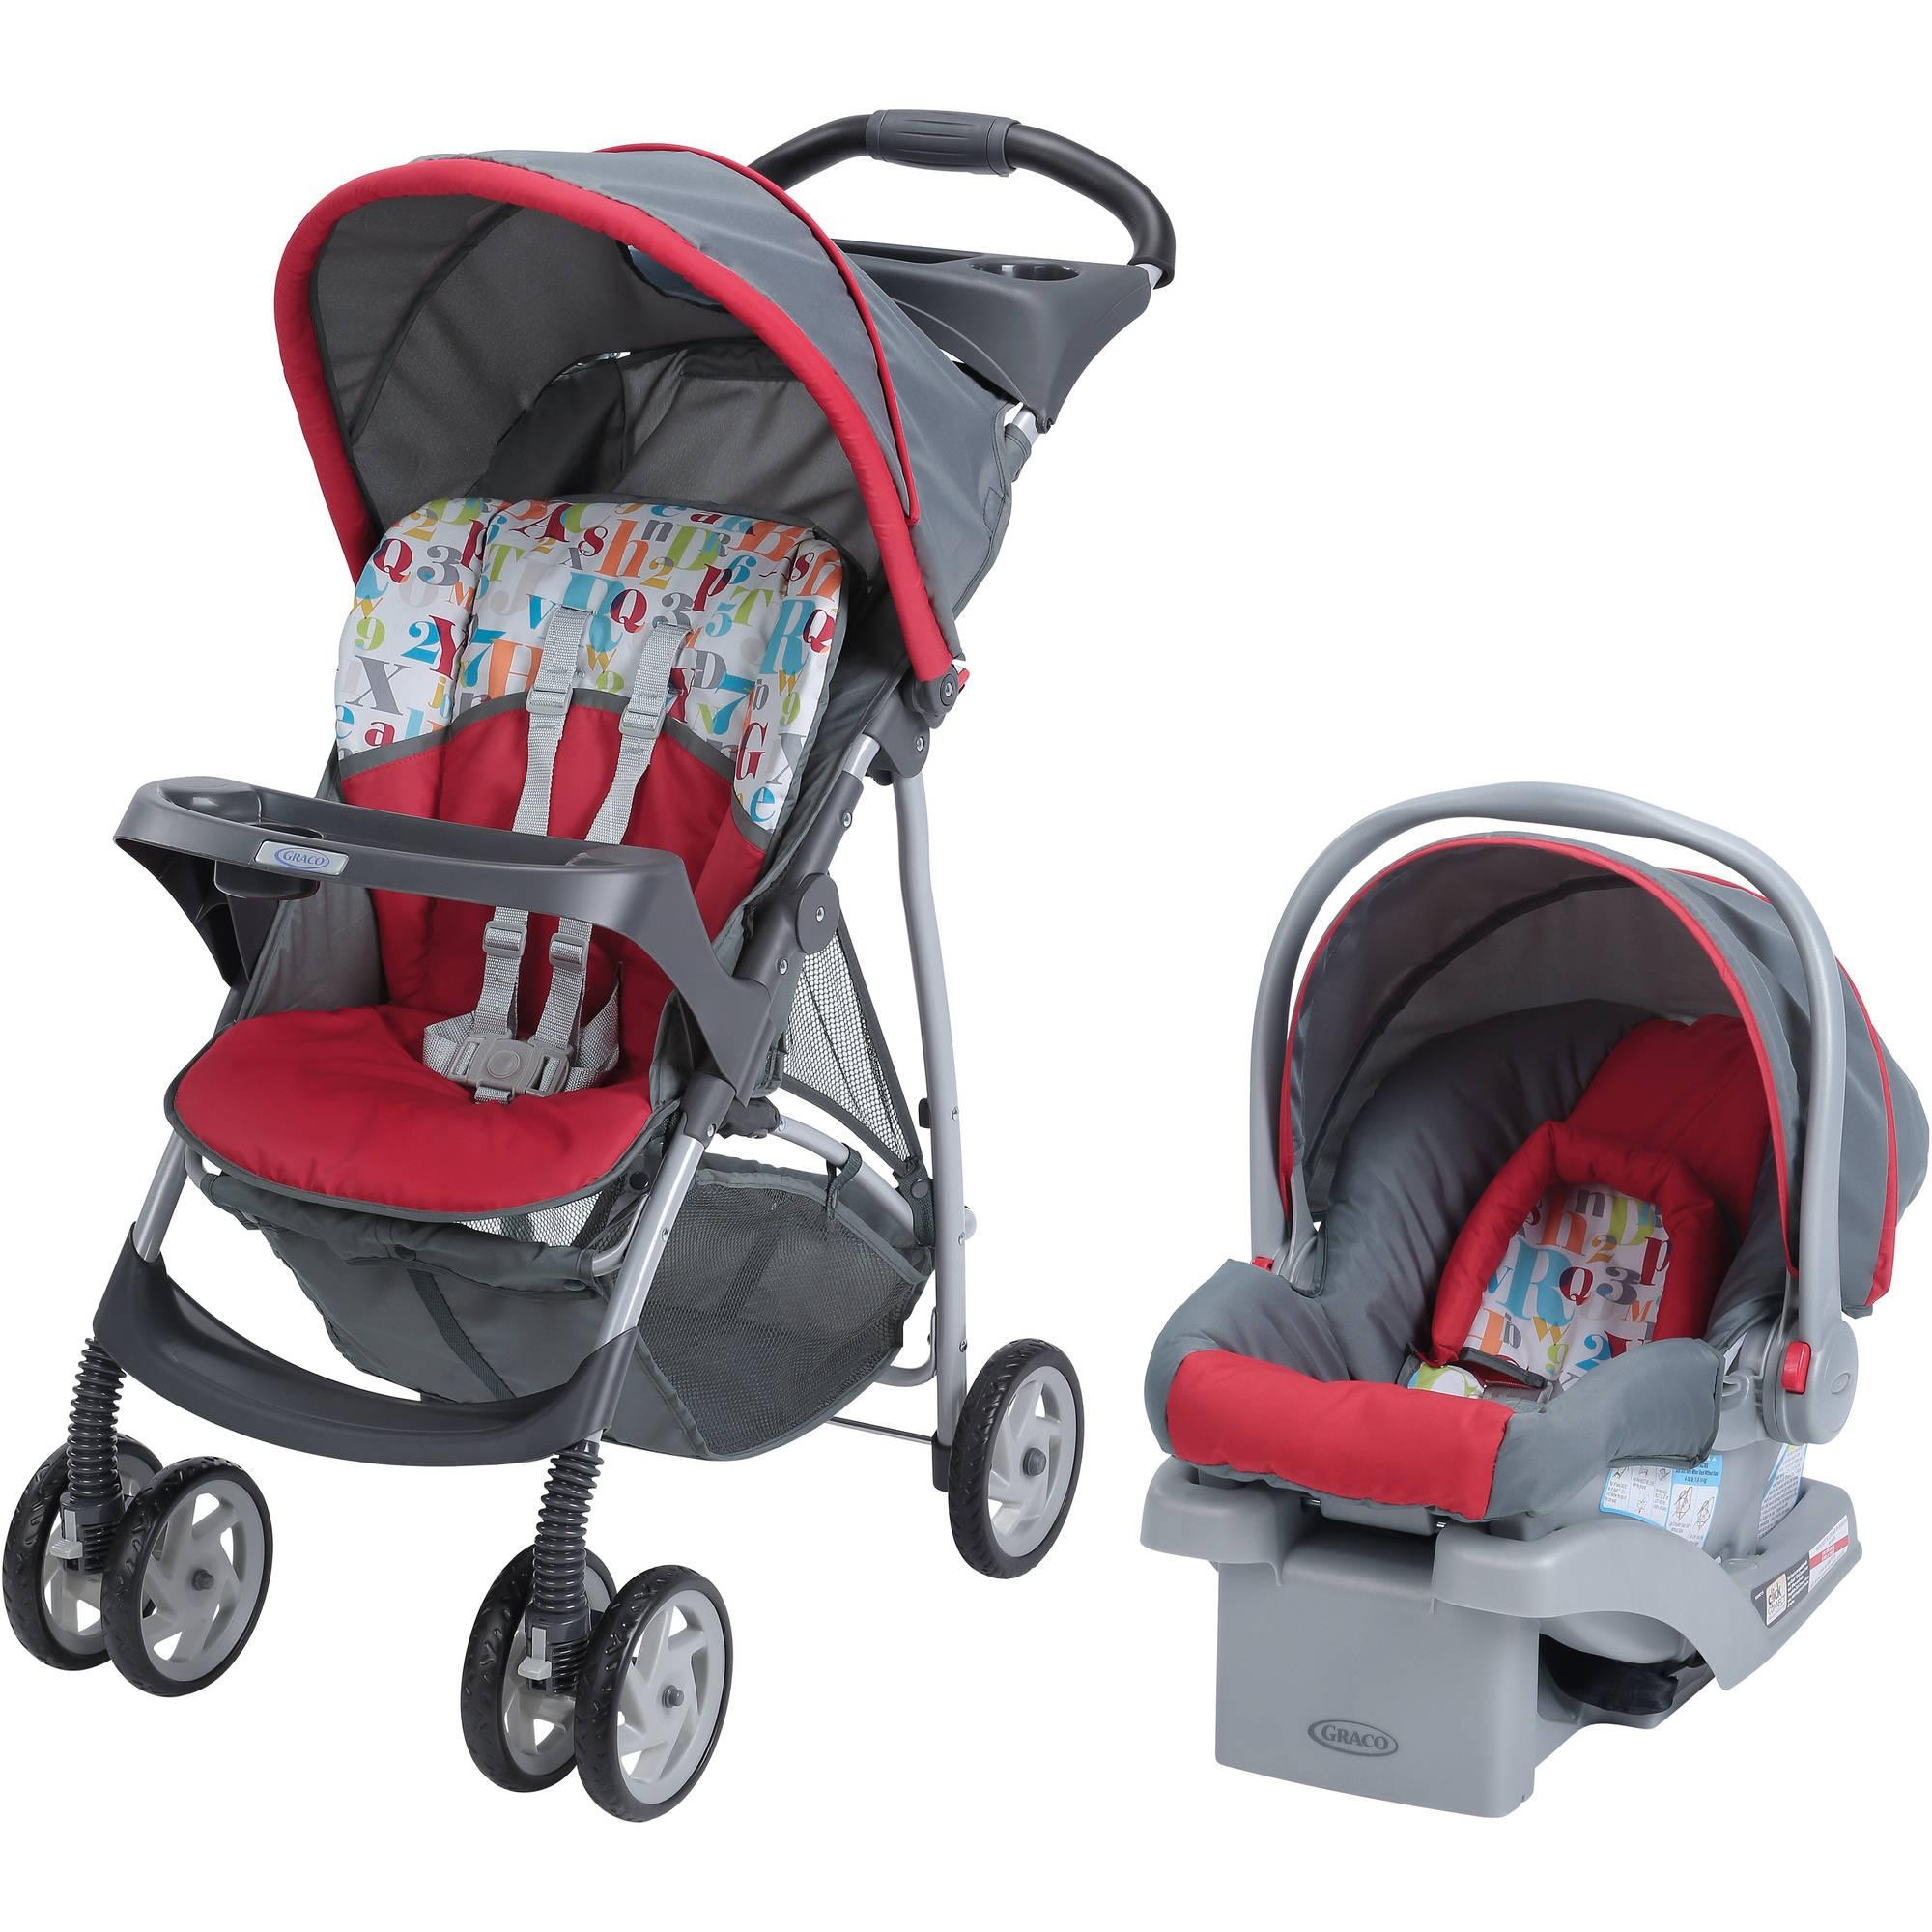 Walmart Graco Literider Click Connect Travel System Car